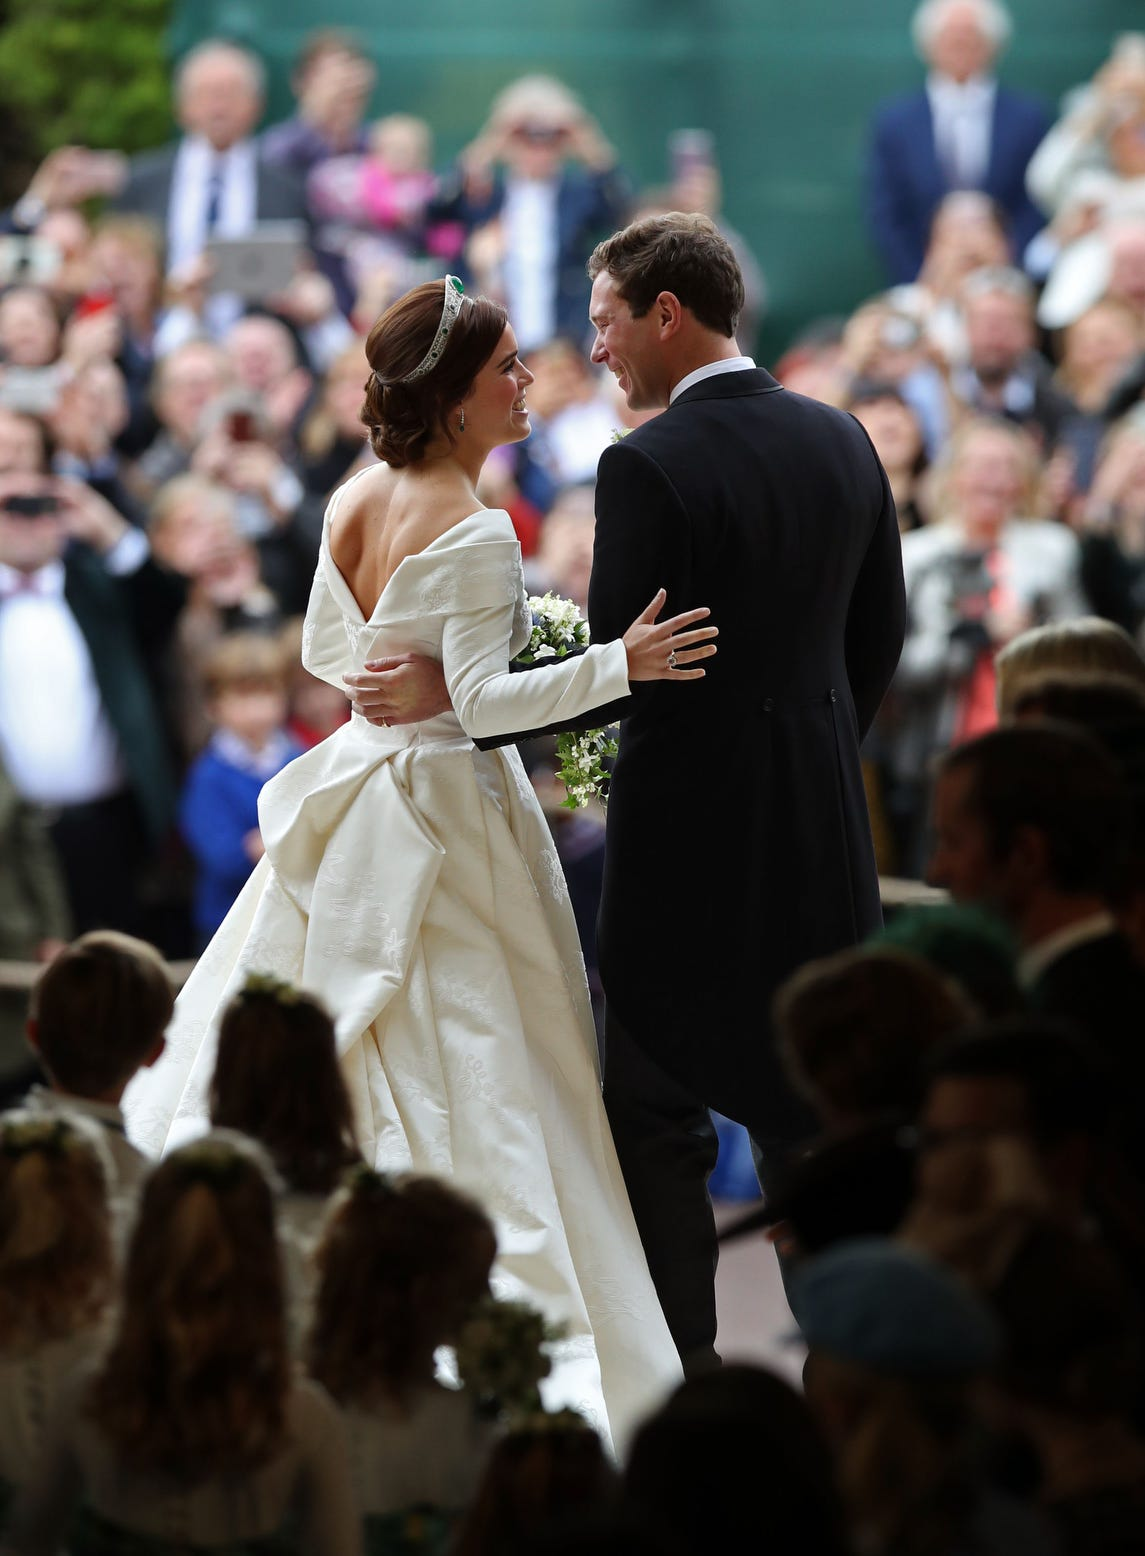 Princess Eugenie of York and Mr. Jack Brooksbank embrace after they were wed at St. George's Chapel on October 12, 2018 in Windsor, England.